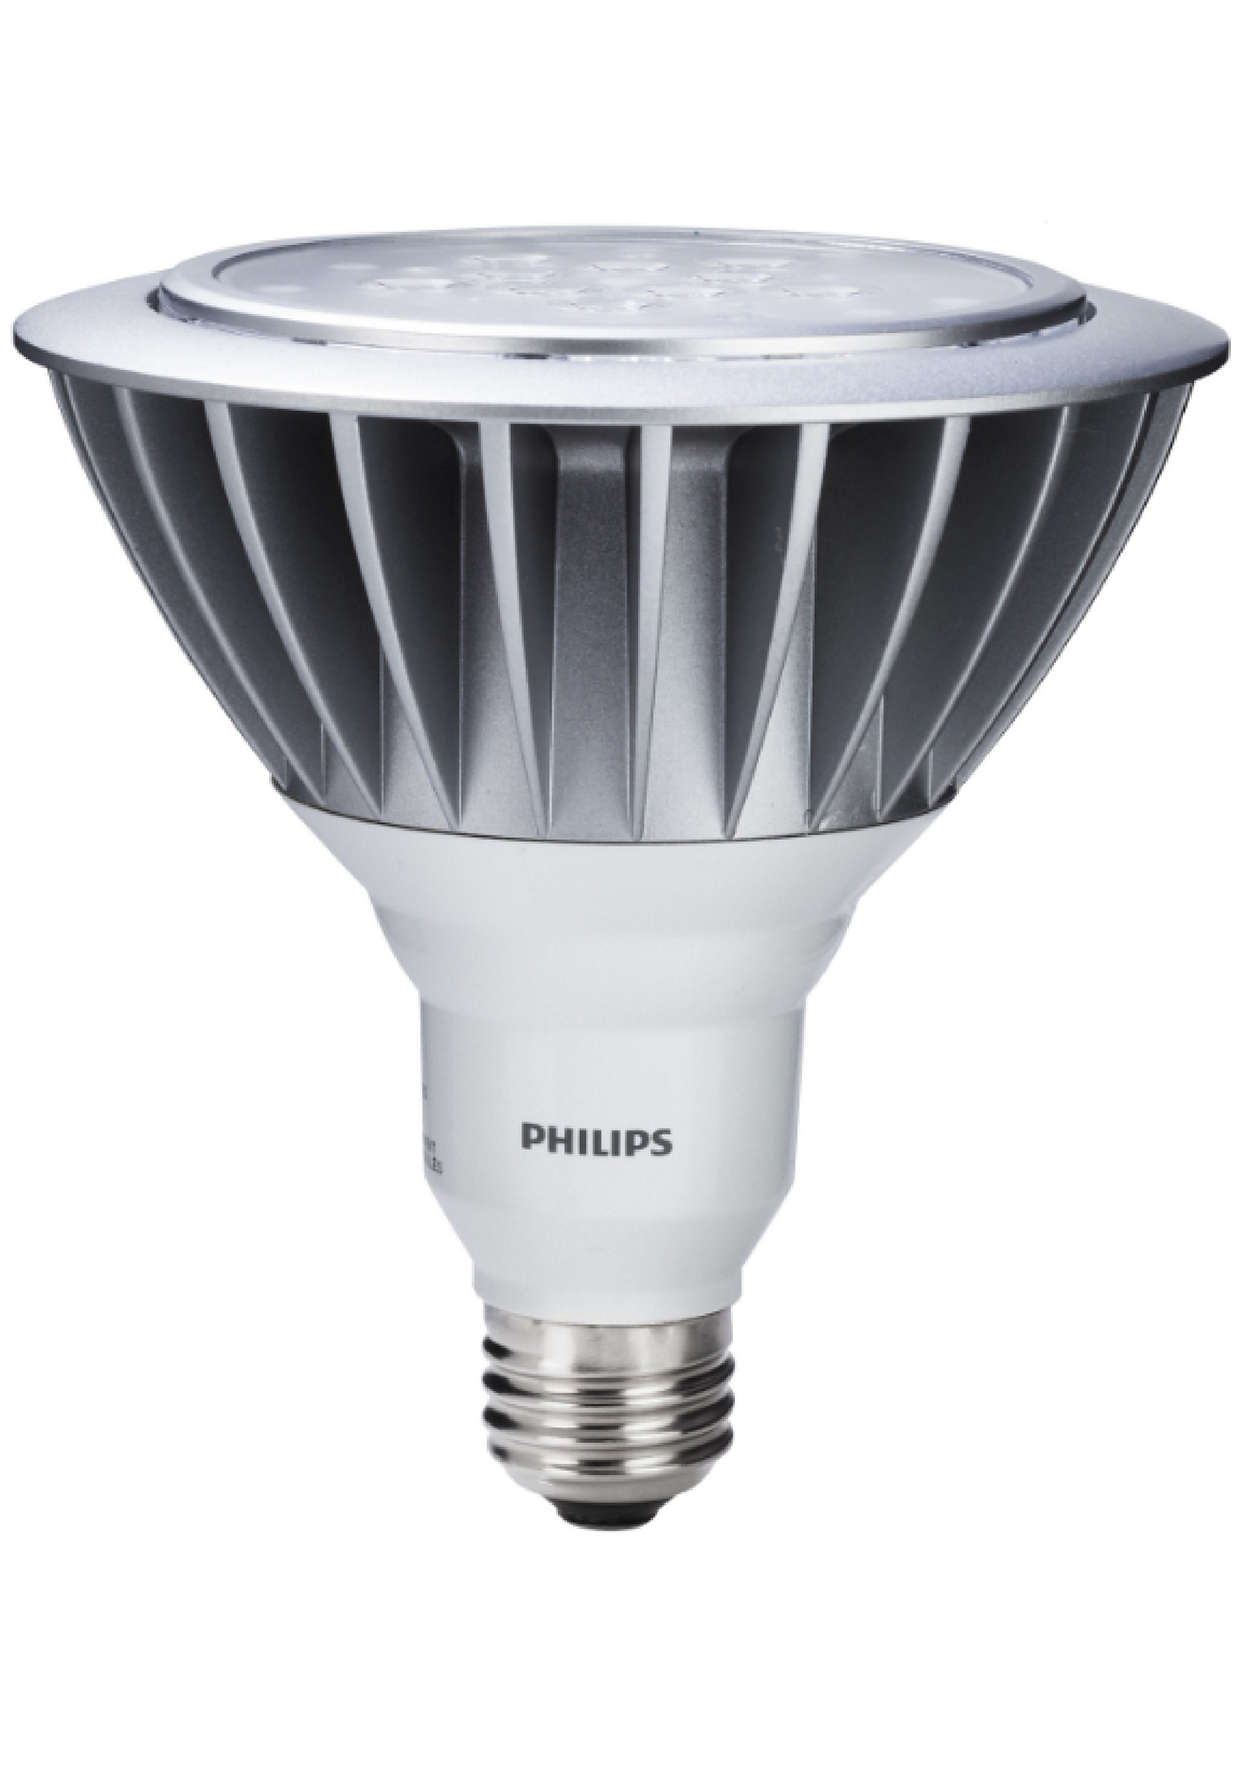 dimmable watch bulbs light recessed lighting ceiling youtube can led lights tips